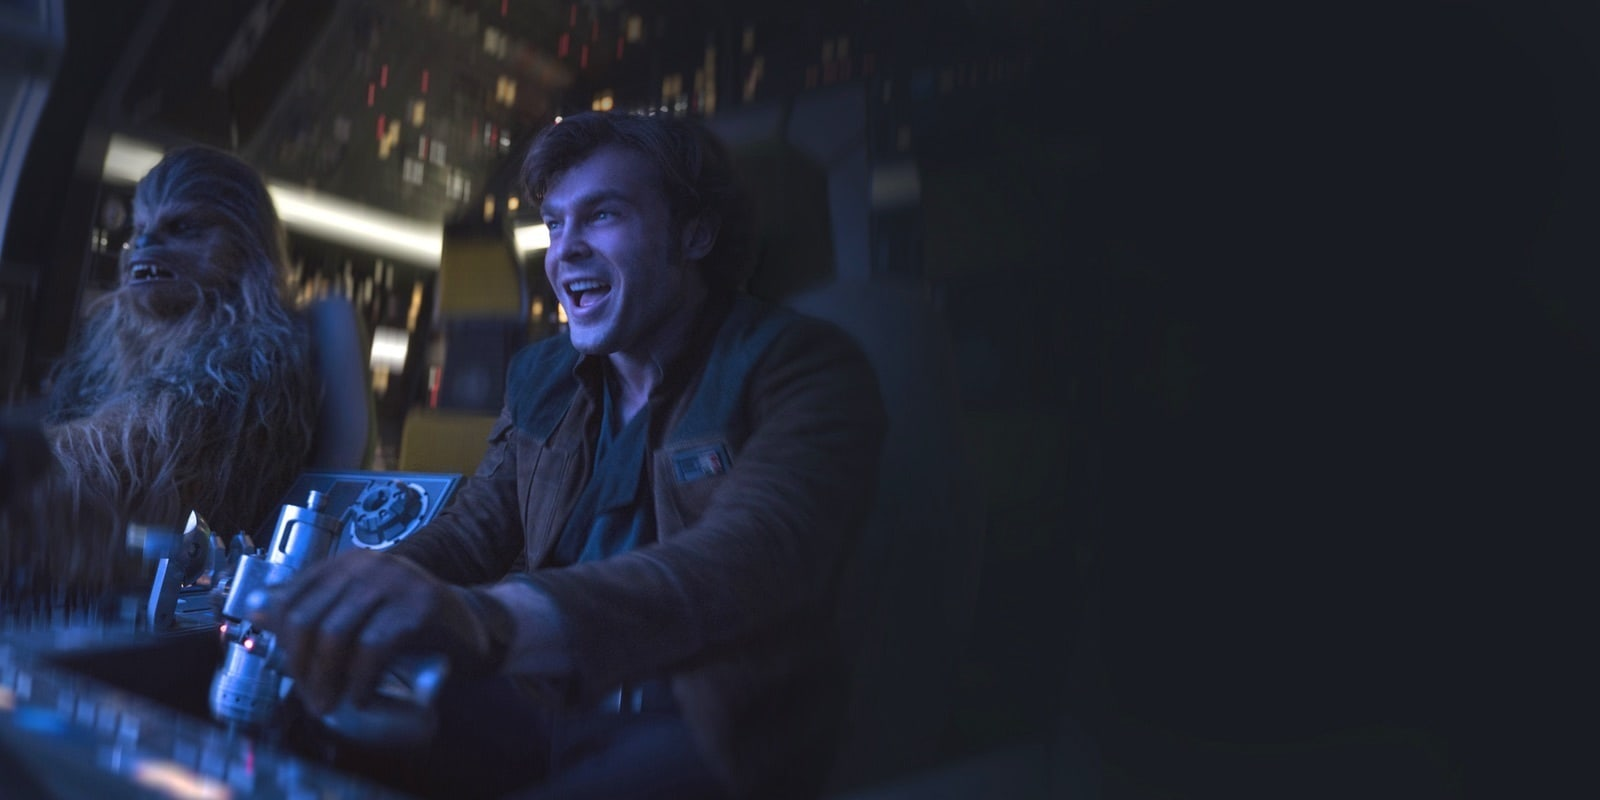 Solo: A Star Wars Story | Movie Synopsis